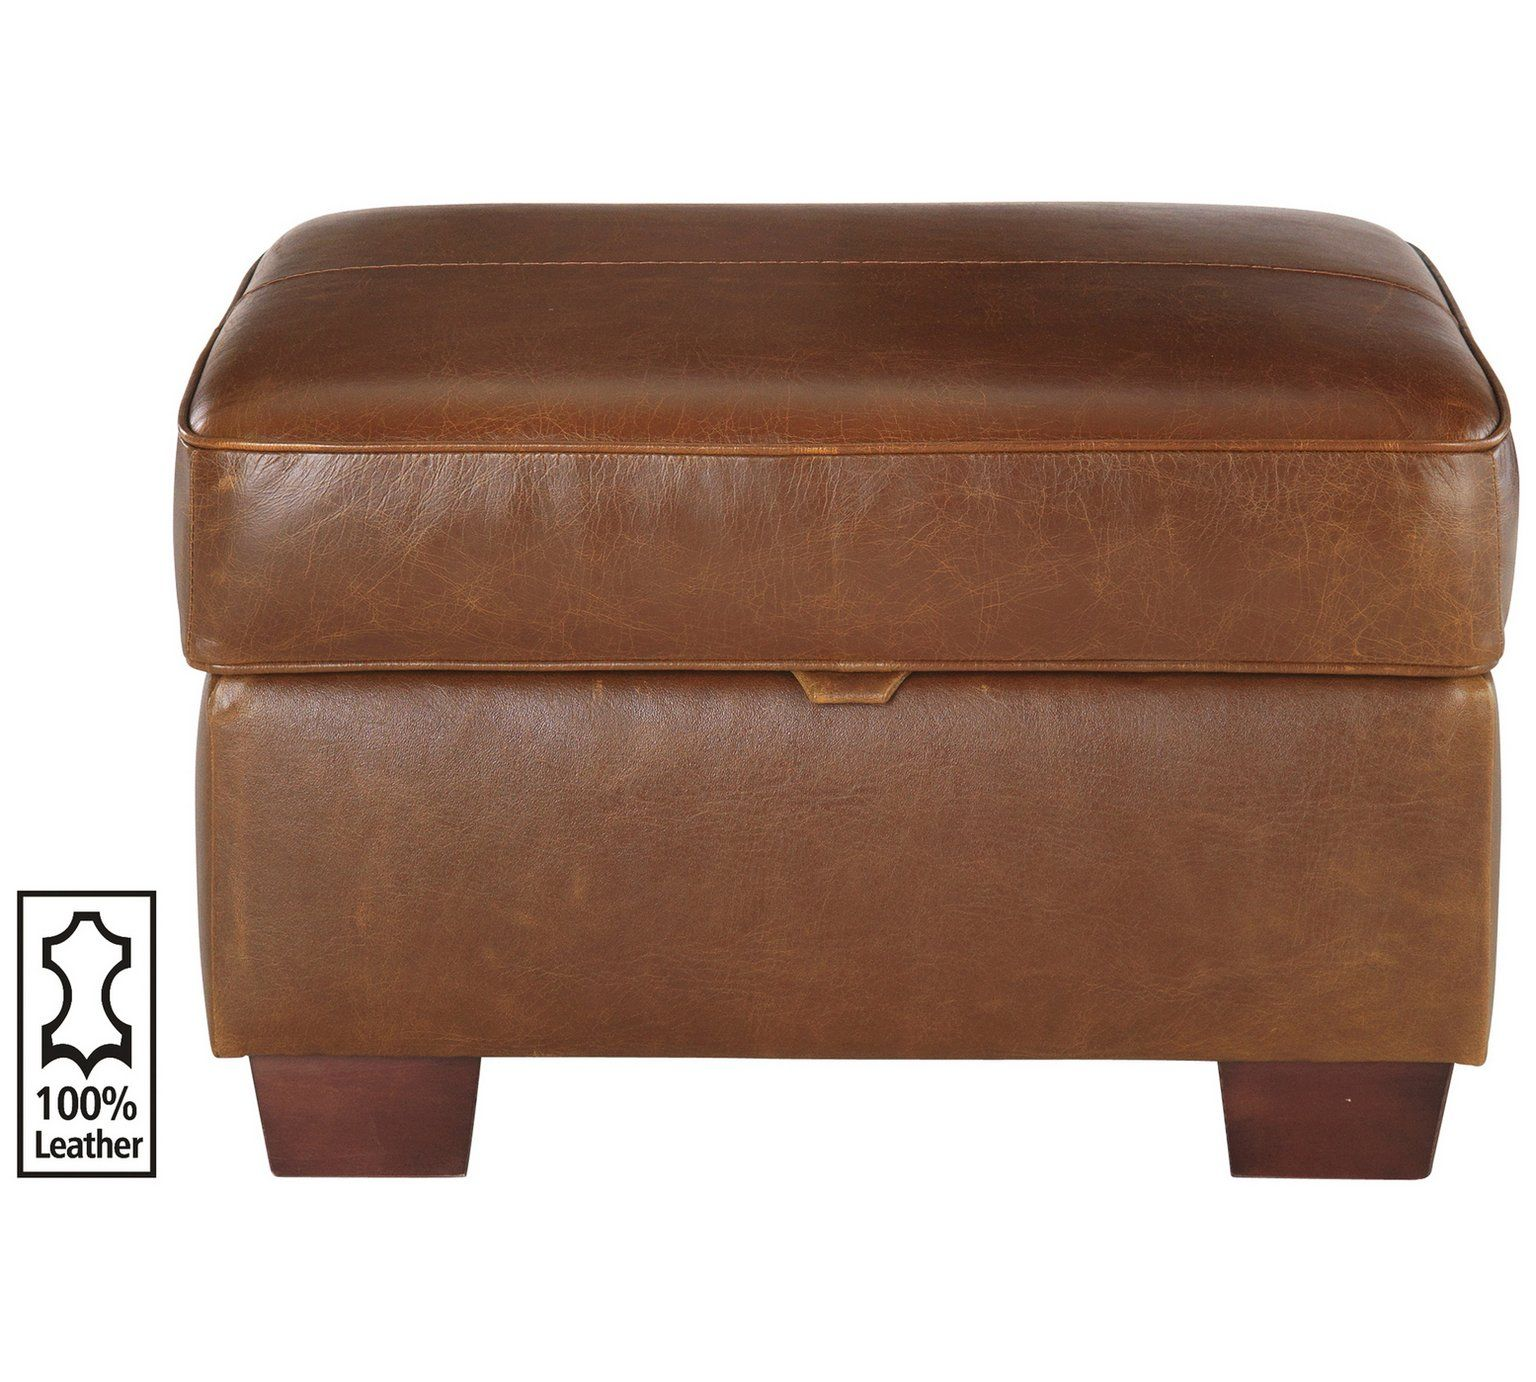 Tremendous Buy Heart Of House Salisbury Leather Storage Footstool Tan Short Links Chair Design For Home Short Linksinfo